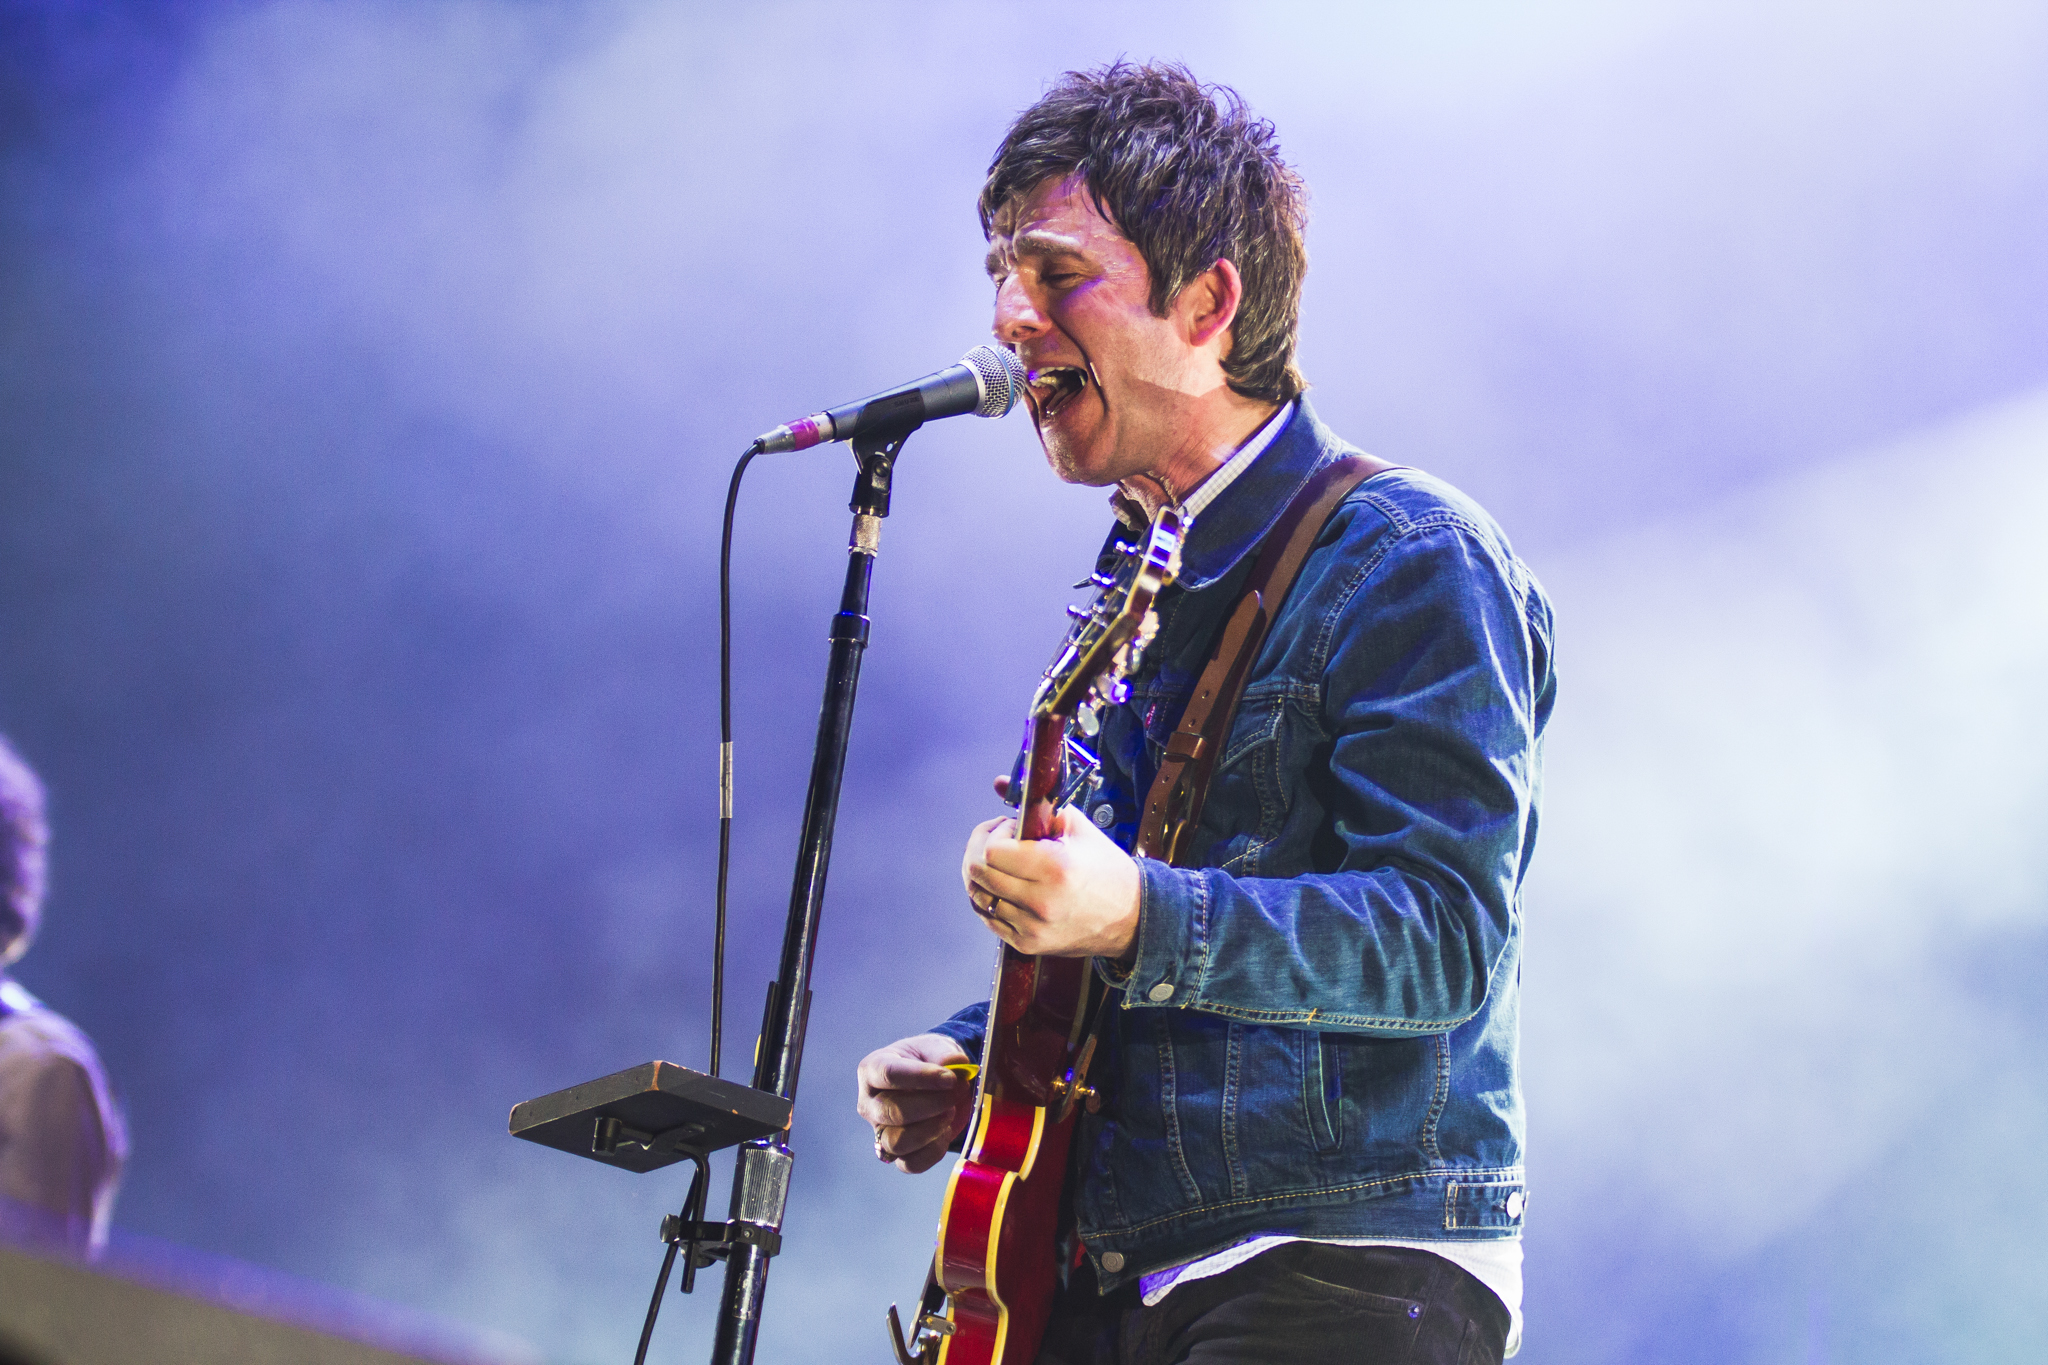 March 9, 2015 - Manchester, England - Noel Gallagher's high flying birds perform at the Manchester Arena 2015